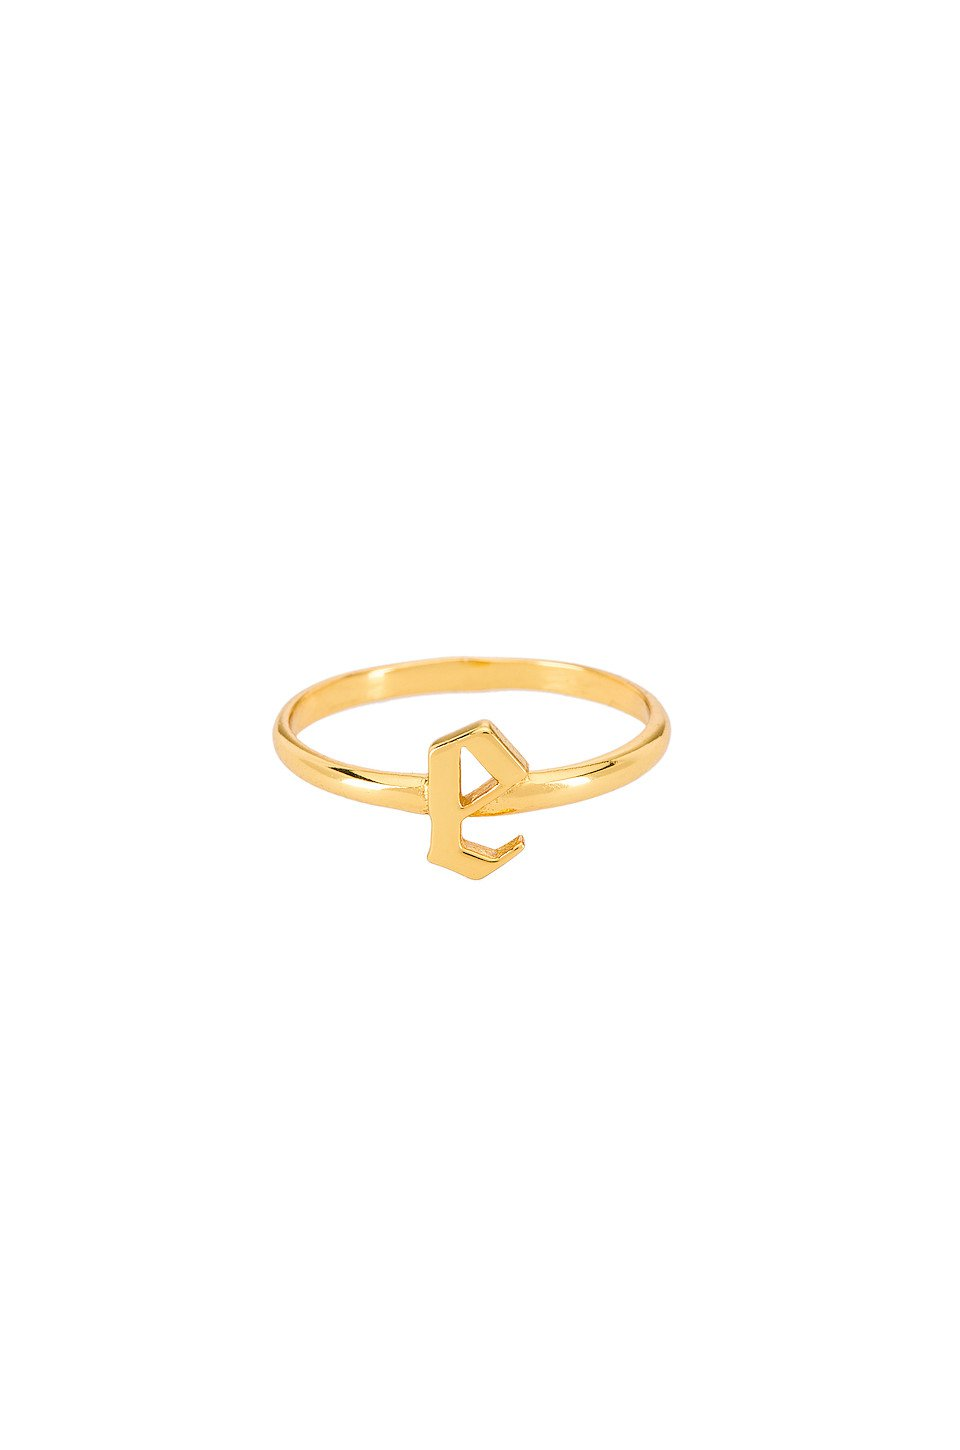 The Gothic Letter E Ring